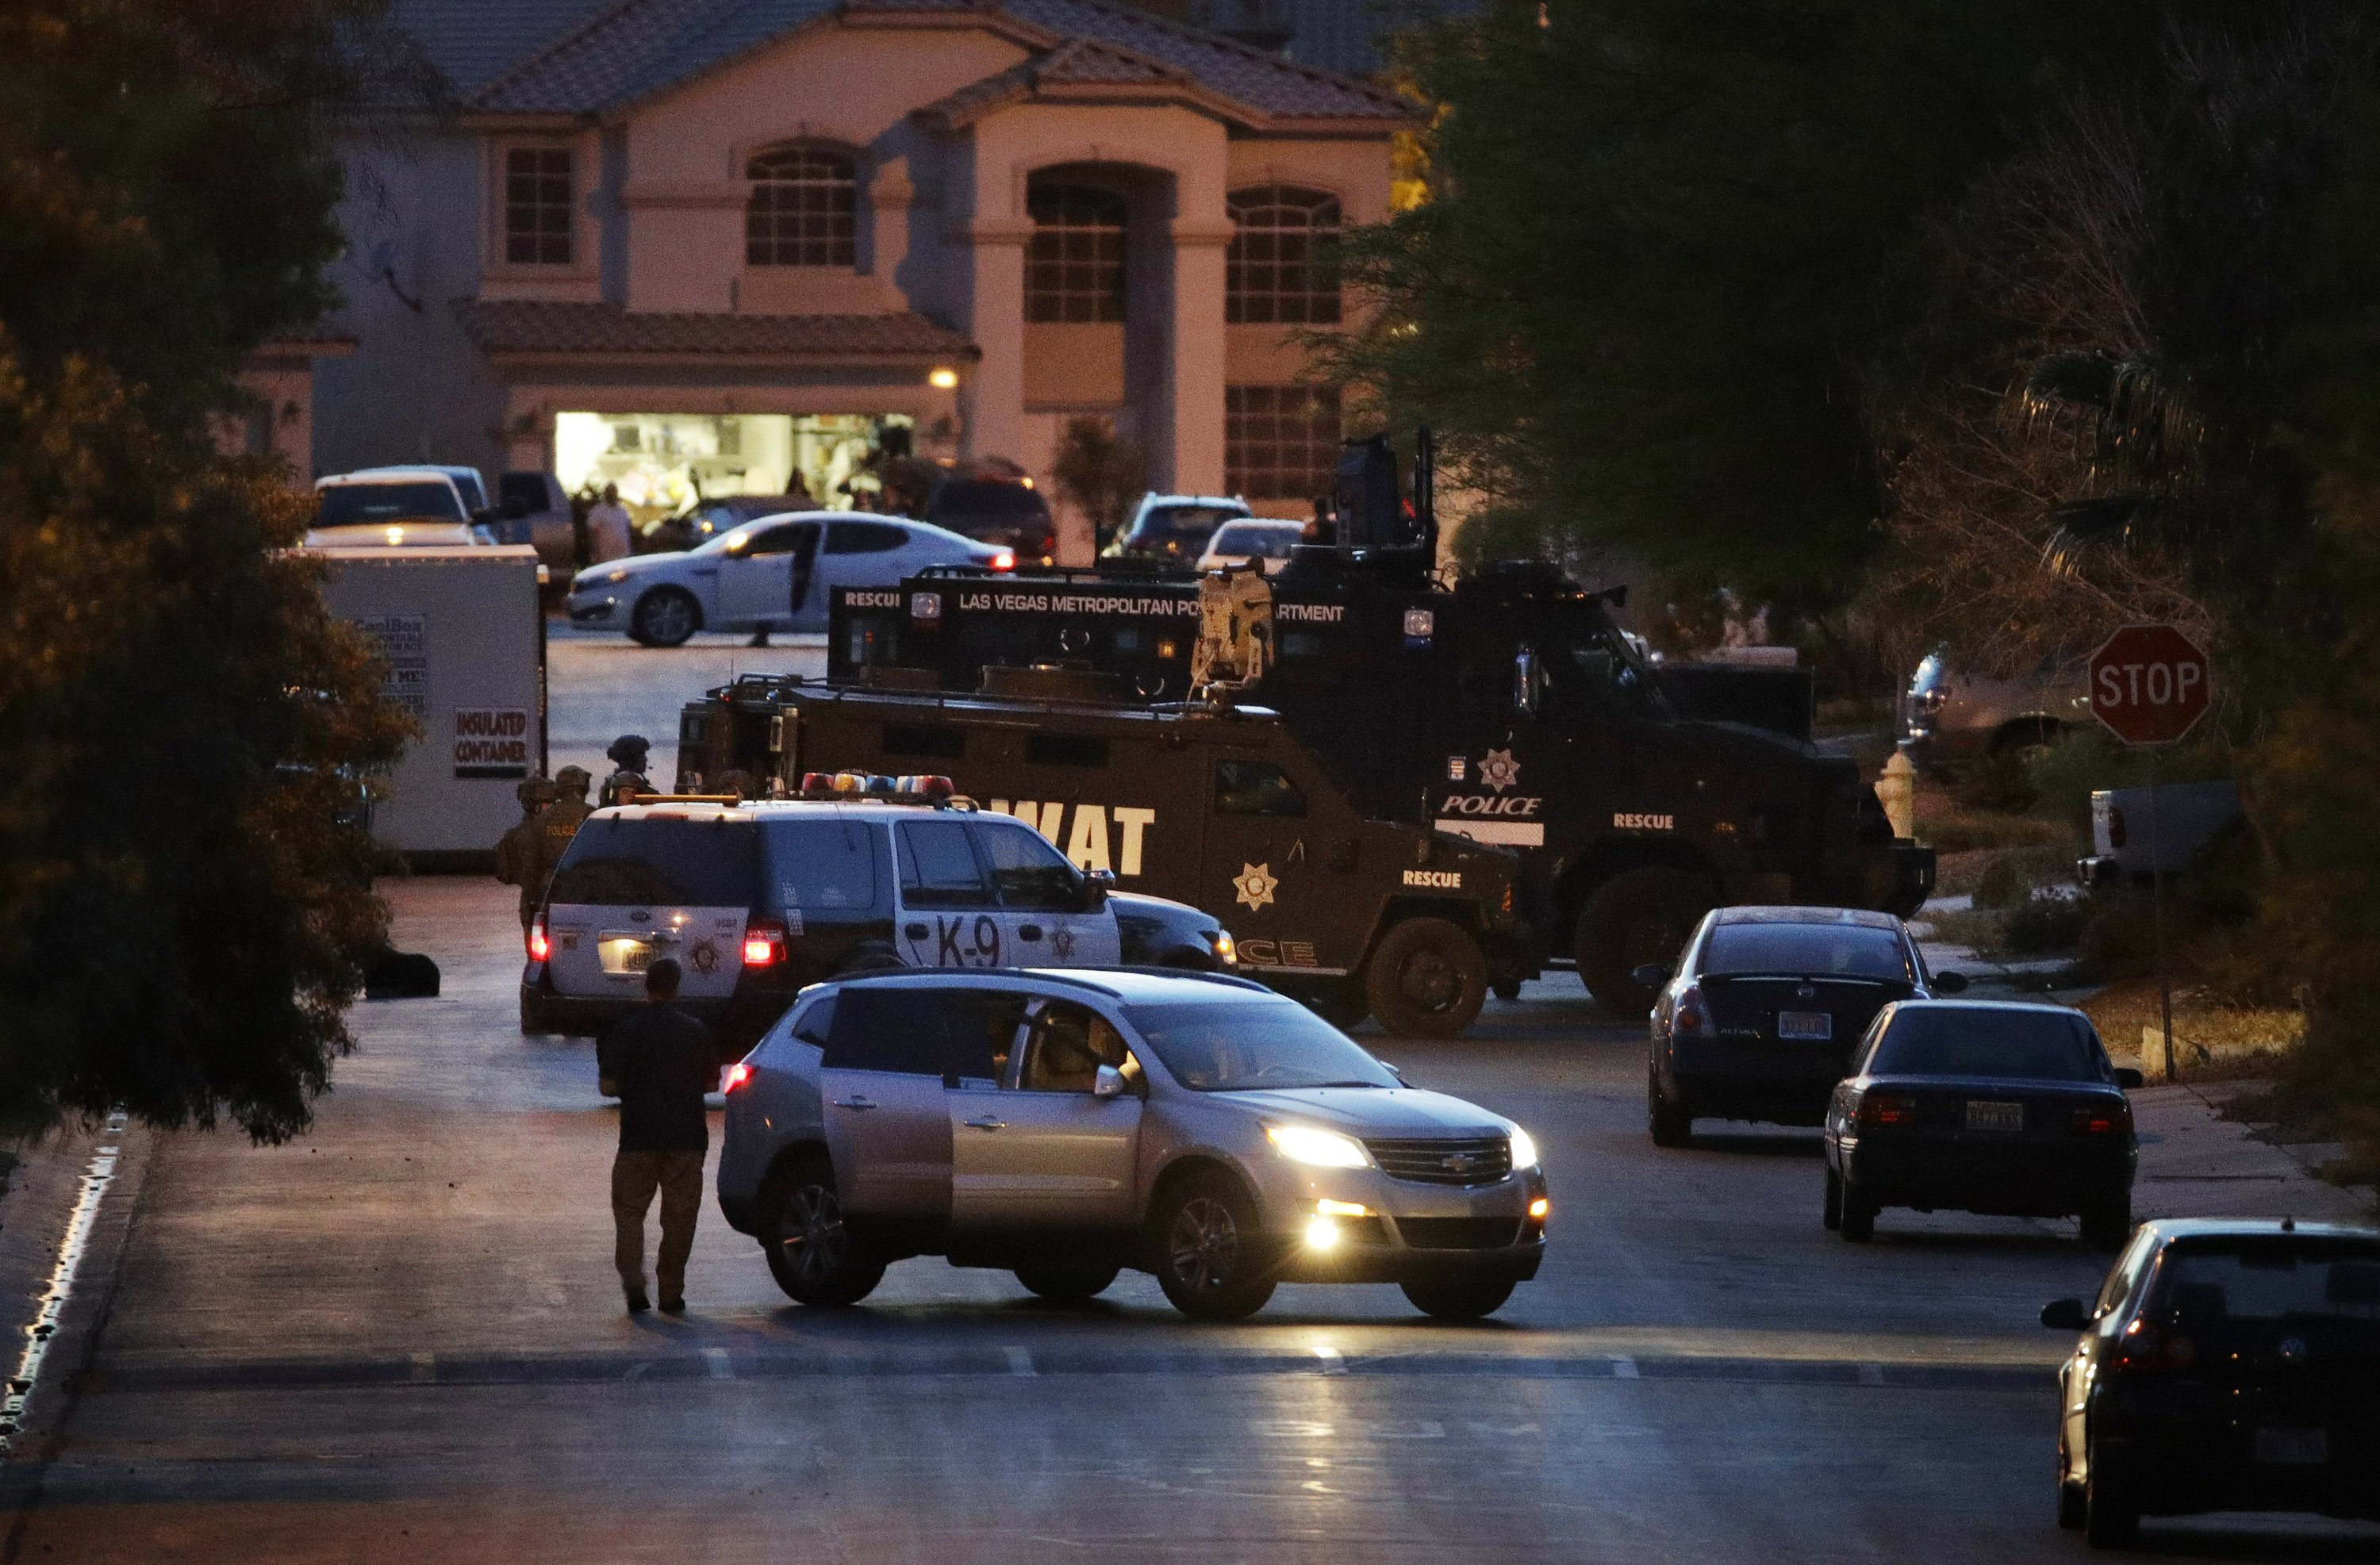 Nevada man arrested on terrorism, weapon charges in Vegas